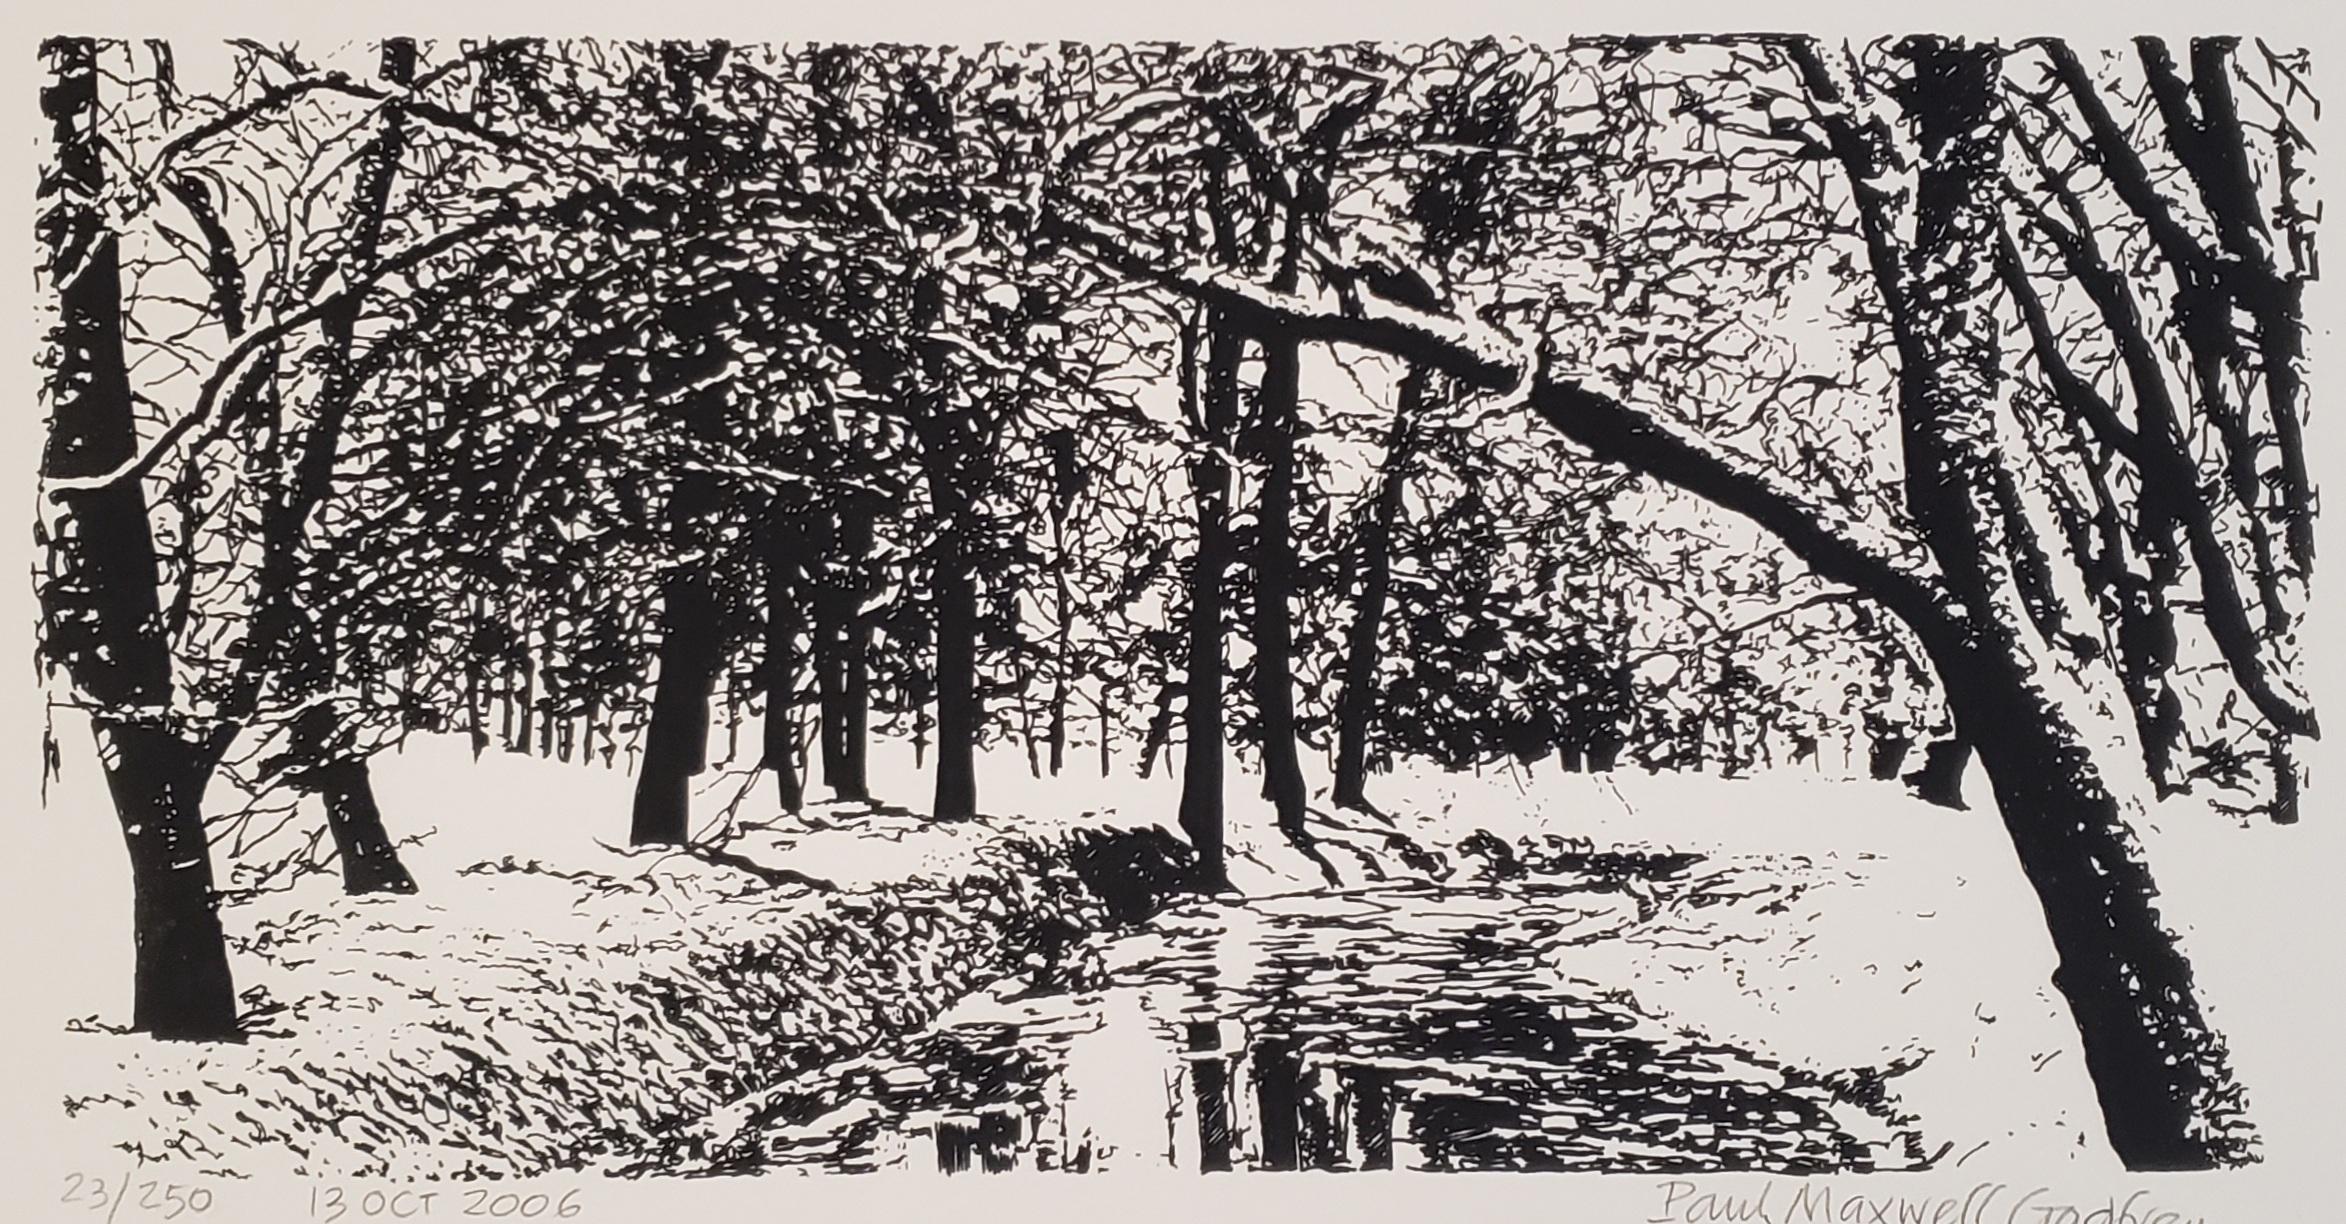 FOREST AT WINTER CREATED BY PAUL MAXWELL GODFREY